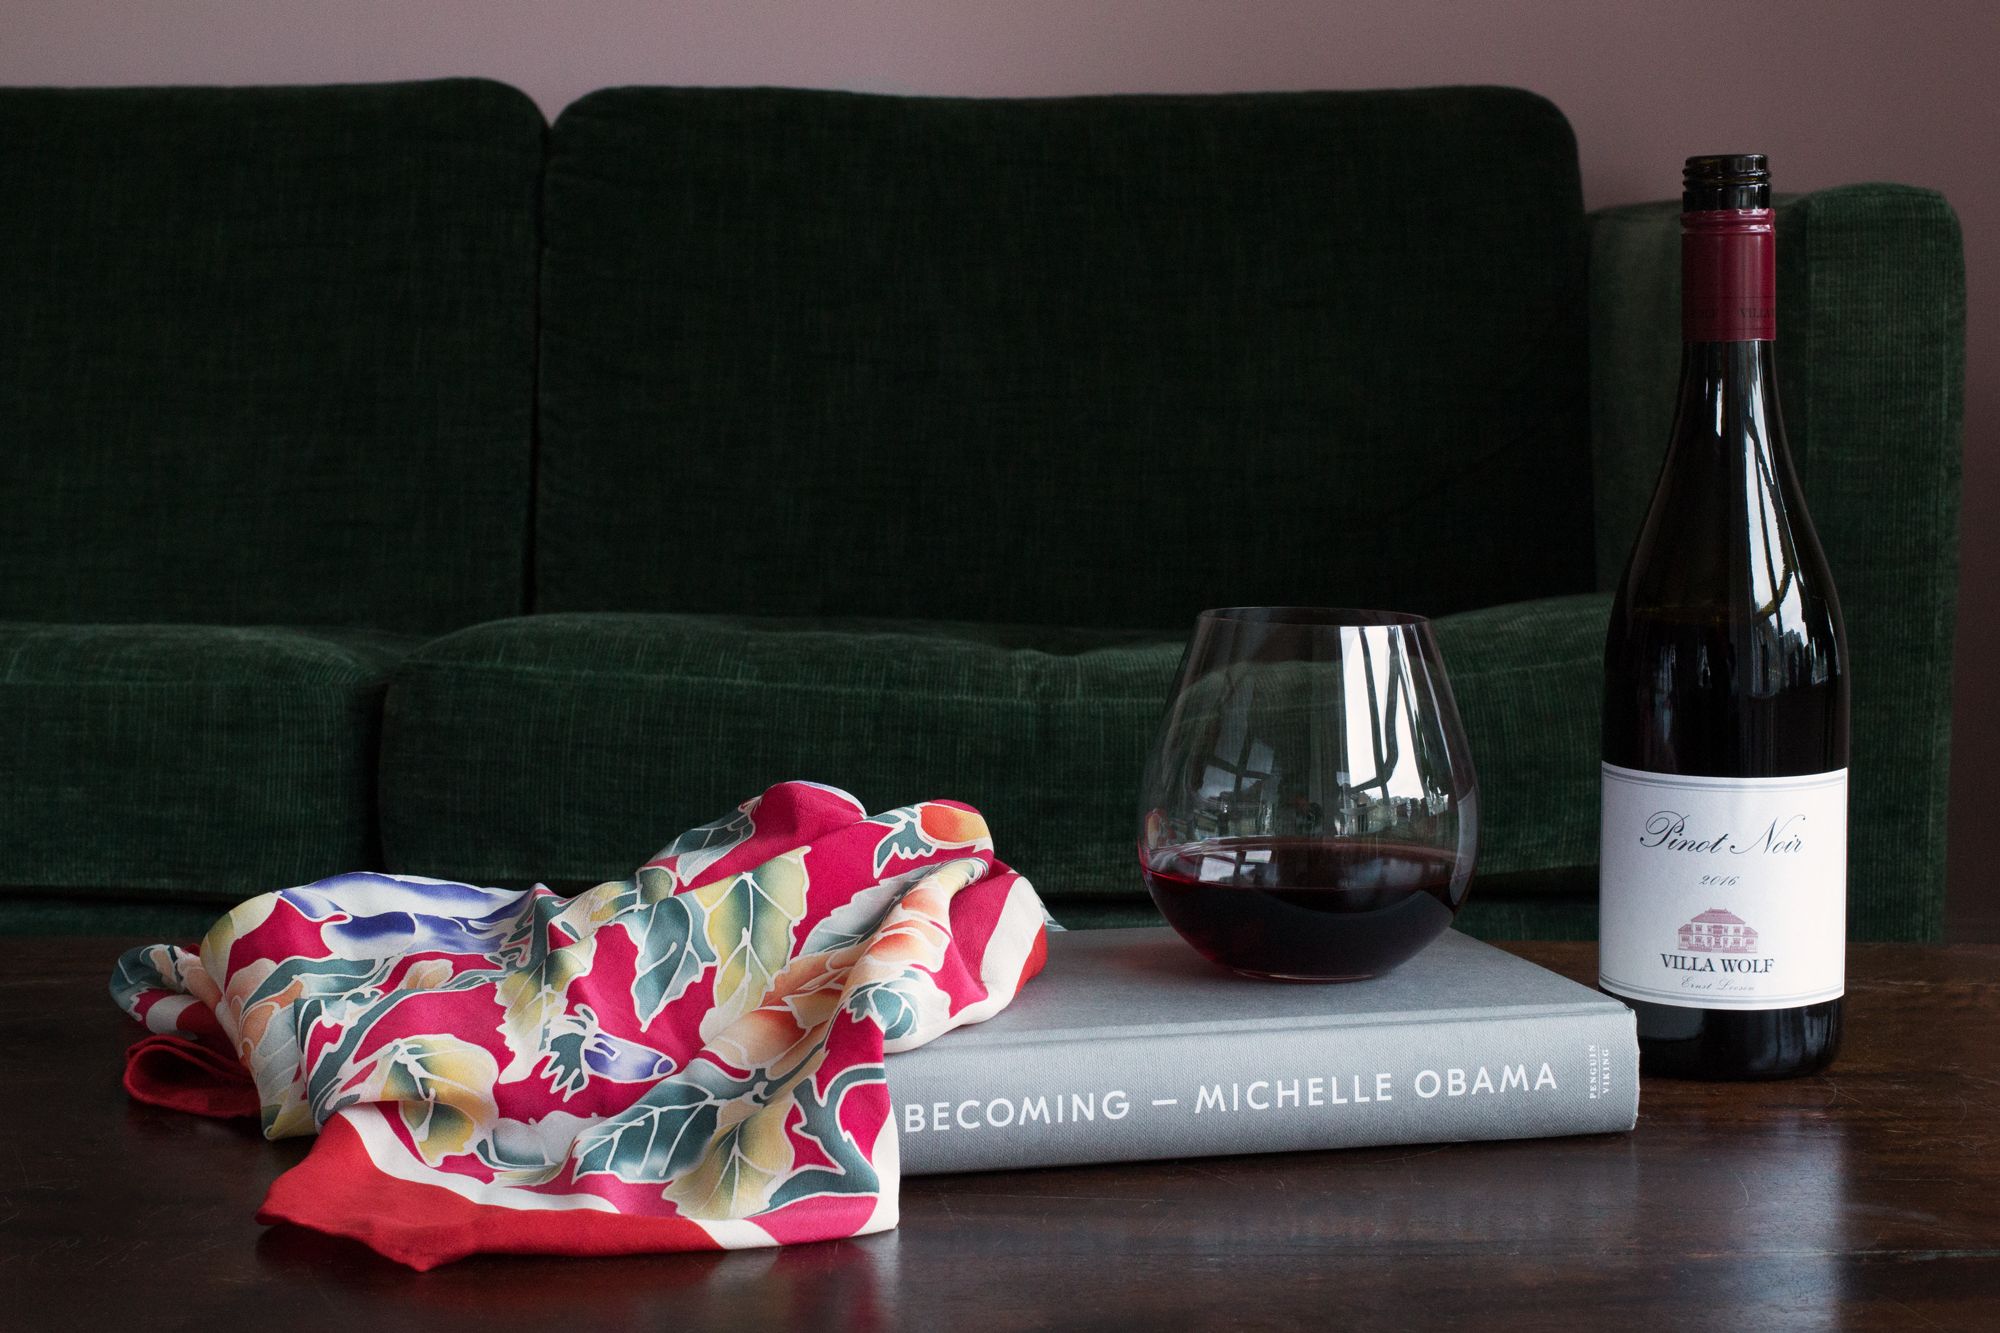 Silk-Scarves-German-Pinot-Noir-and-Michelle-Obama-2.png